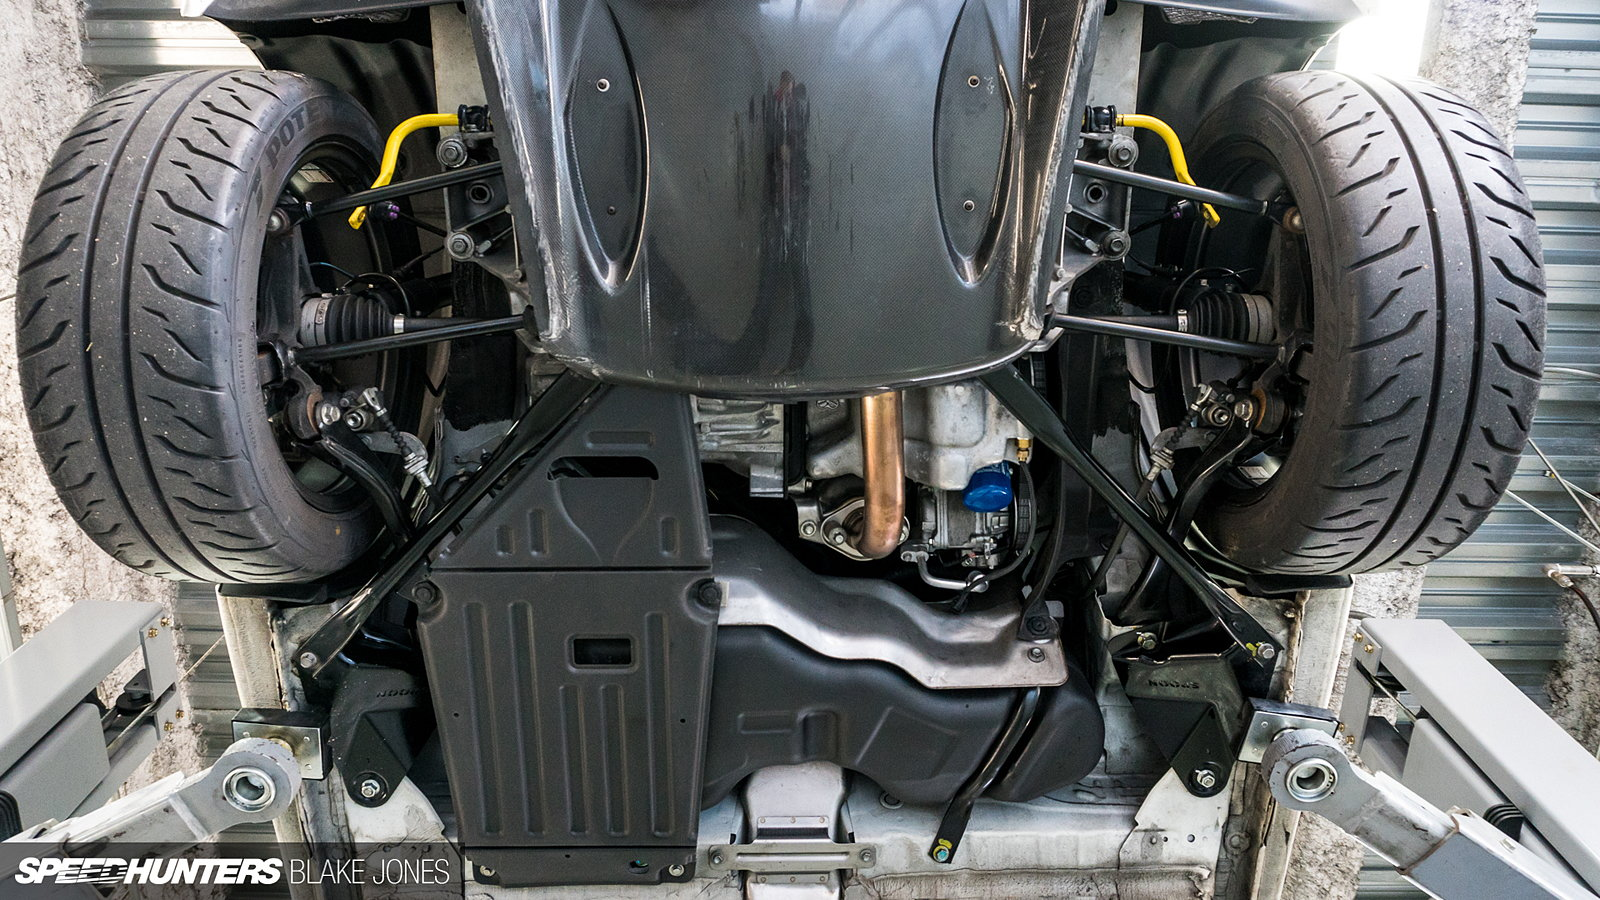 Spoon S660 Gets a Type One Performance Boost